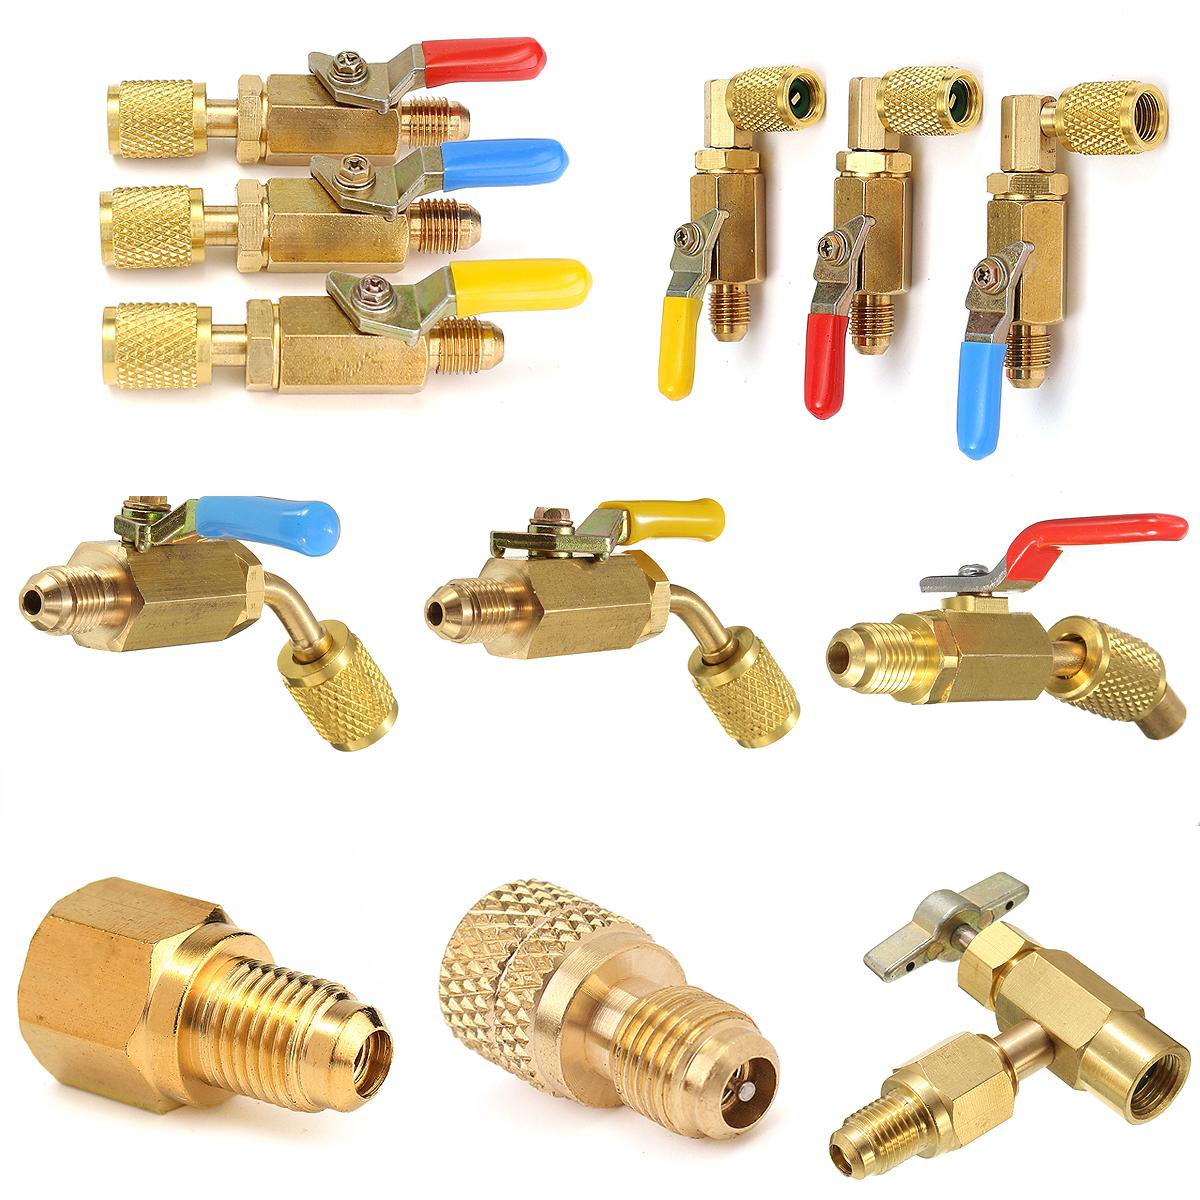 Car AC R12 To R134A Valve Fitting Adapter 1/4 Male To 1/2 Female ACME &  Valve Core Car Air-condition Refrigerant Brass Adapter